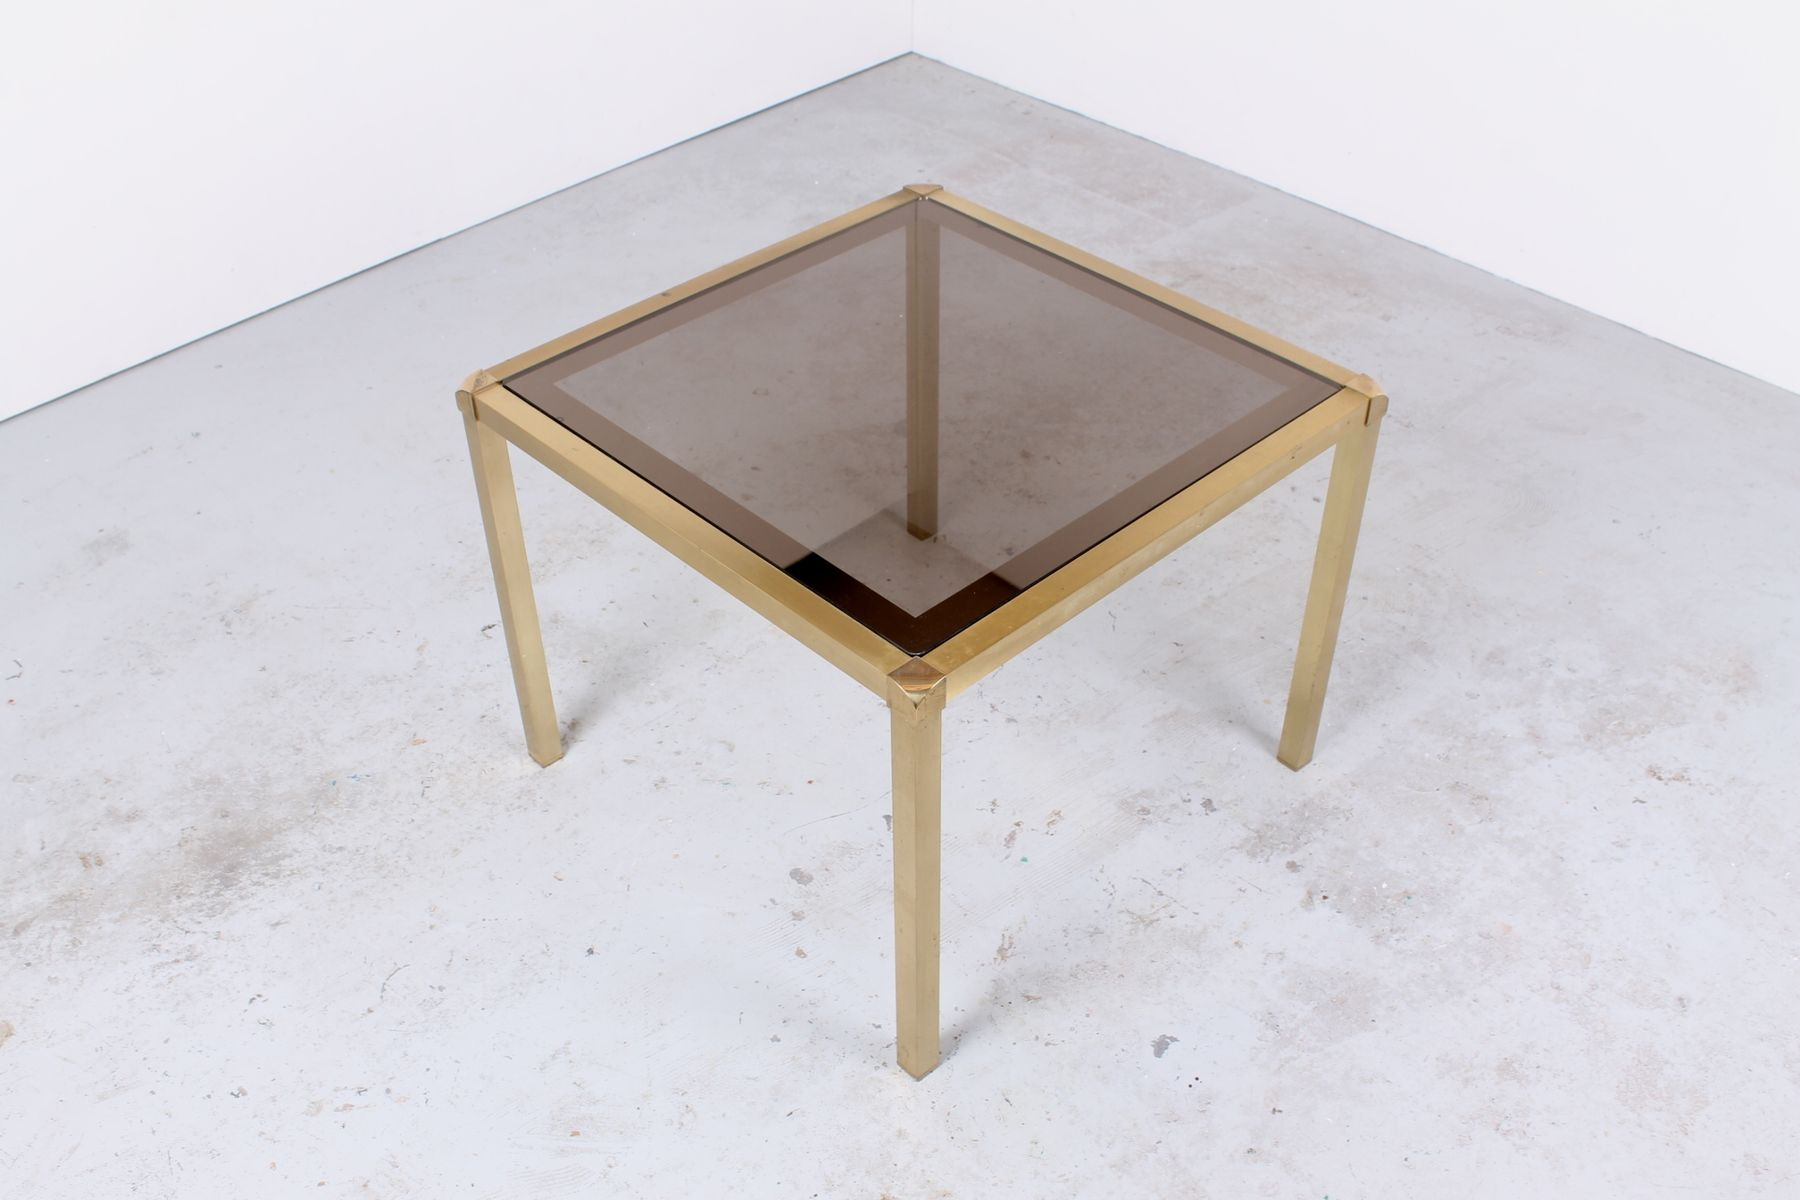 Hollywood Regency Style Brass and Glass Cocktail Table for sale at